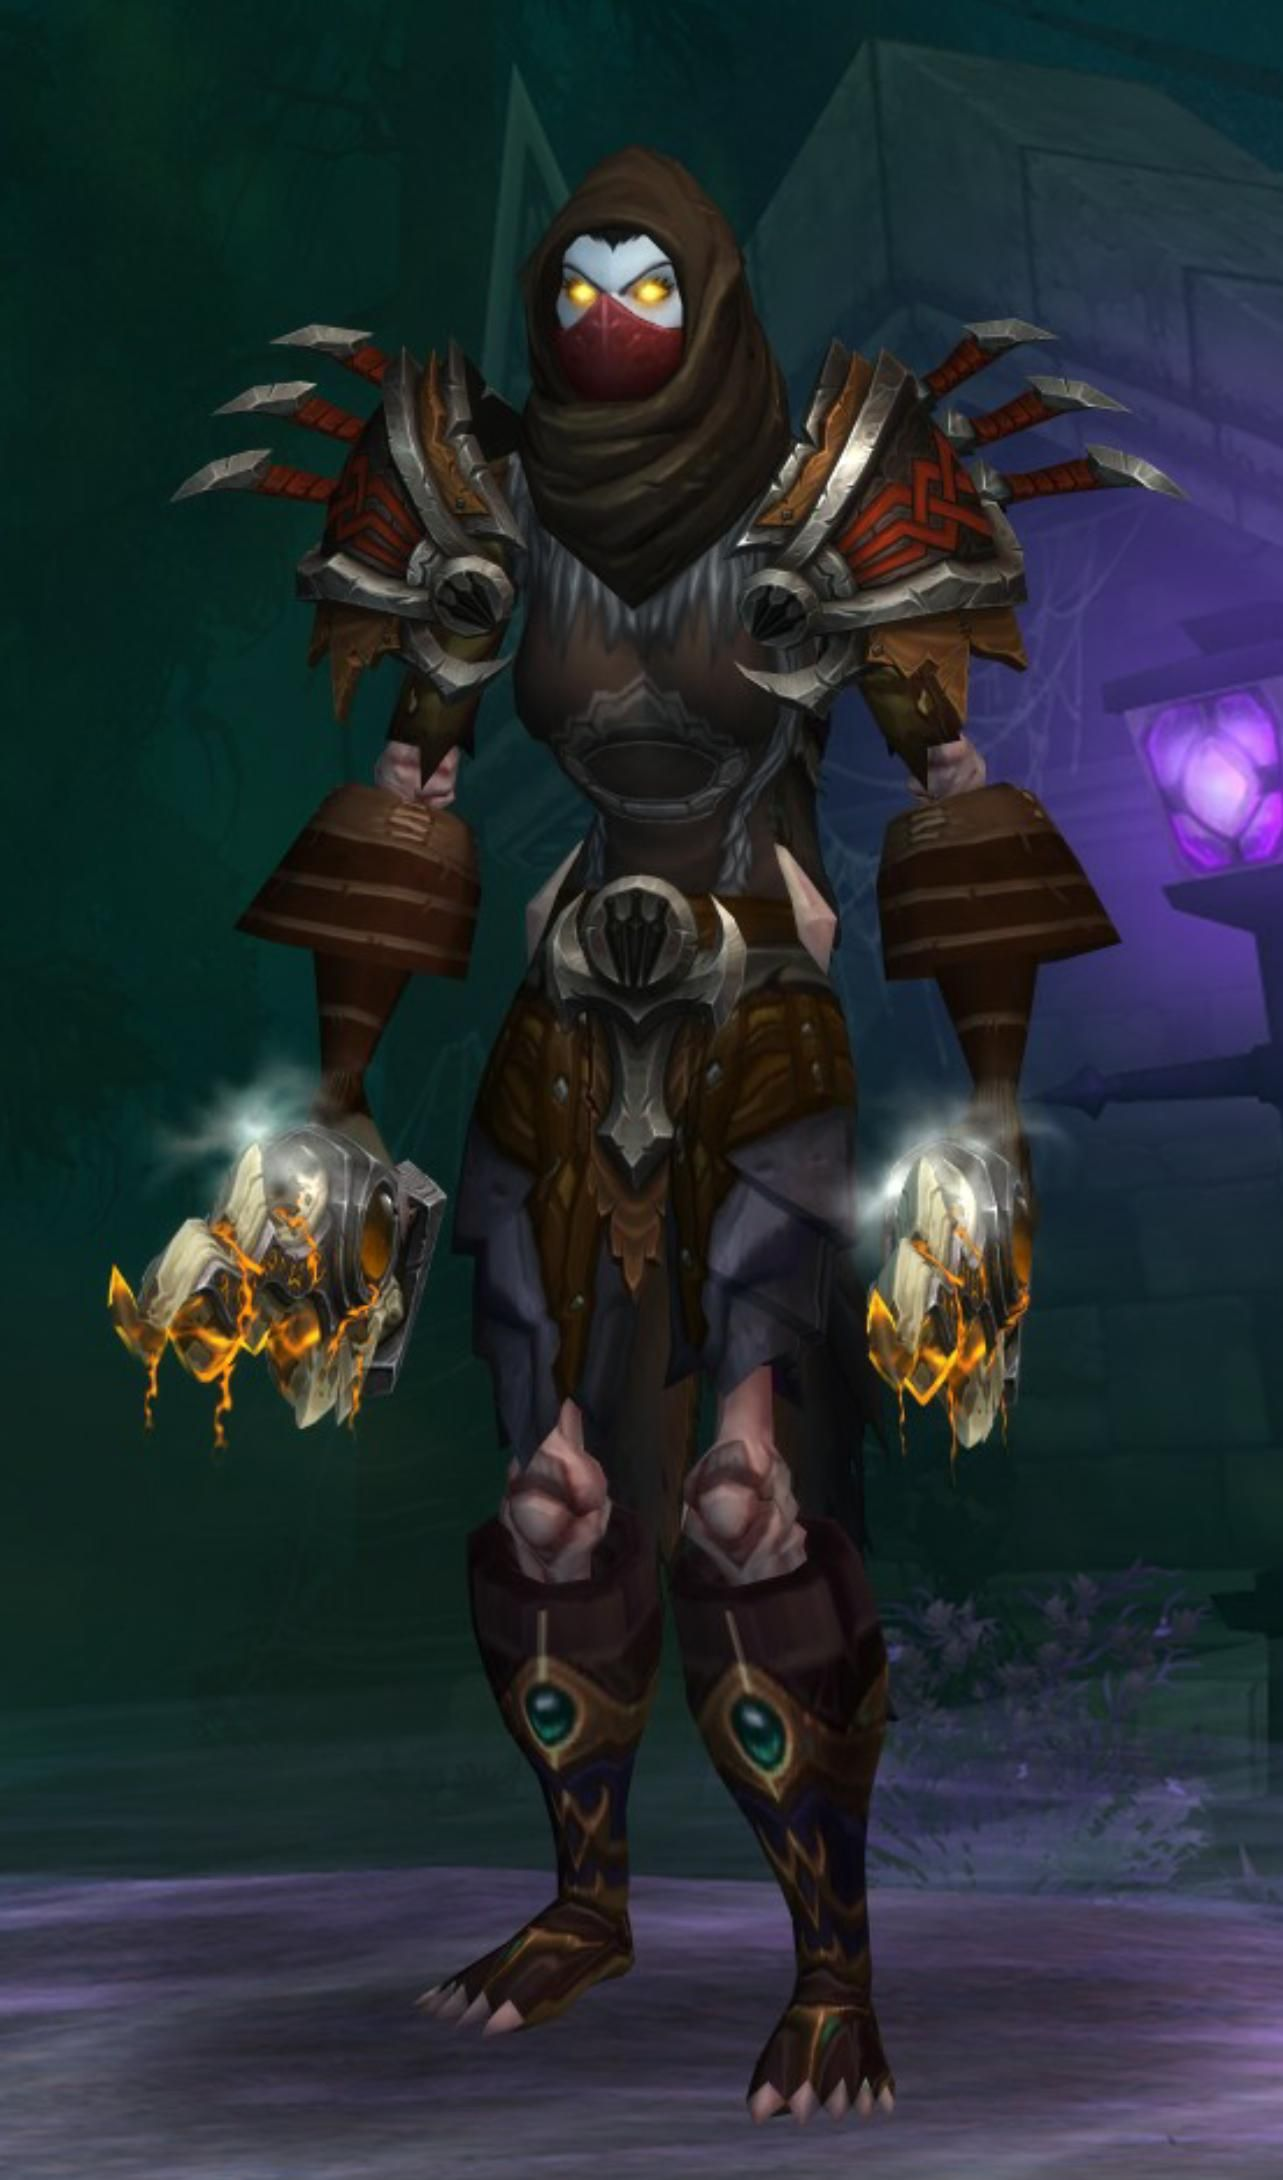 got the sub rogue hidden artifact appearance is it like the easiest